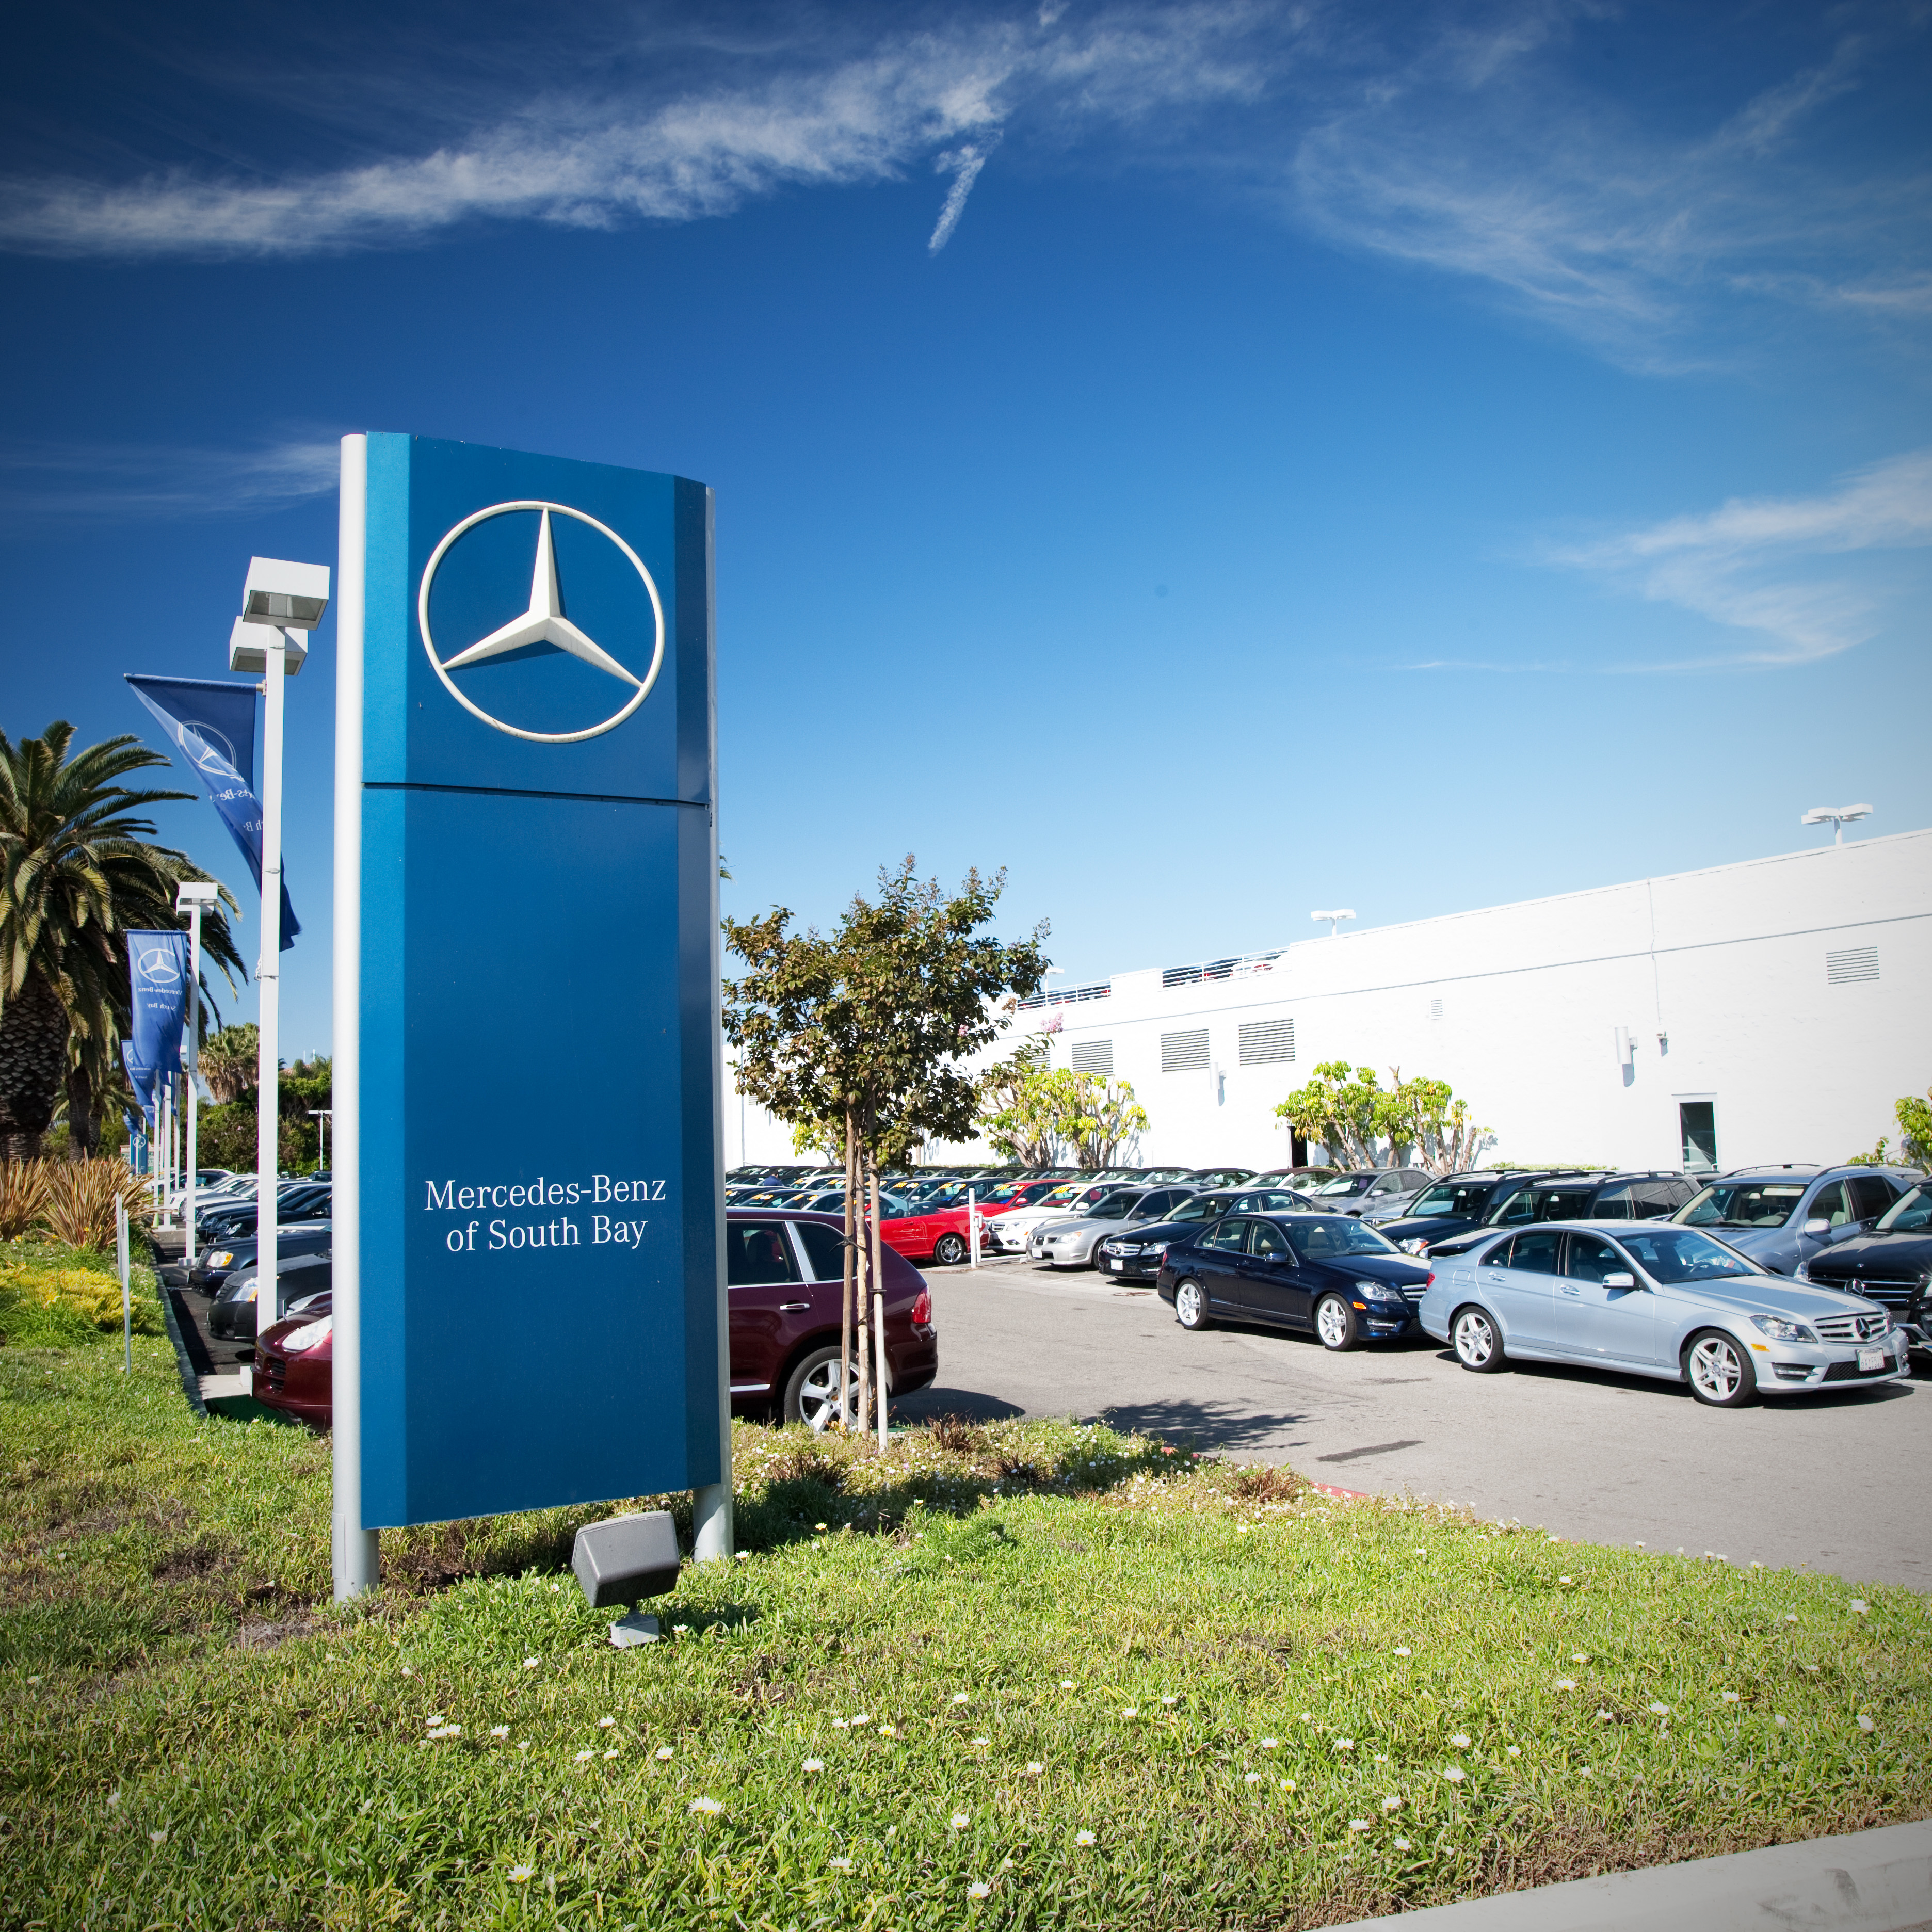 Mercedes Benz Of South Bay. U2039 U203a